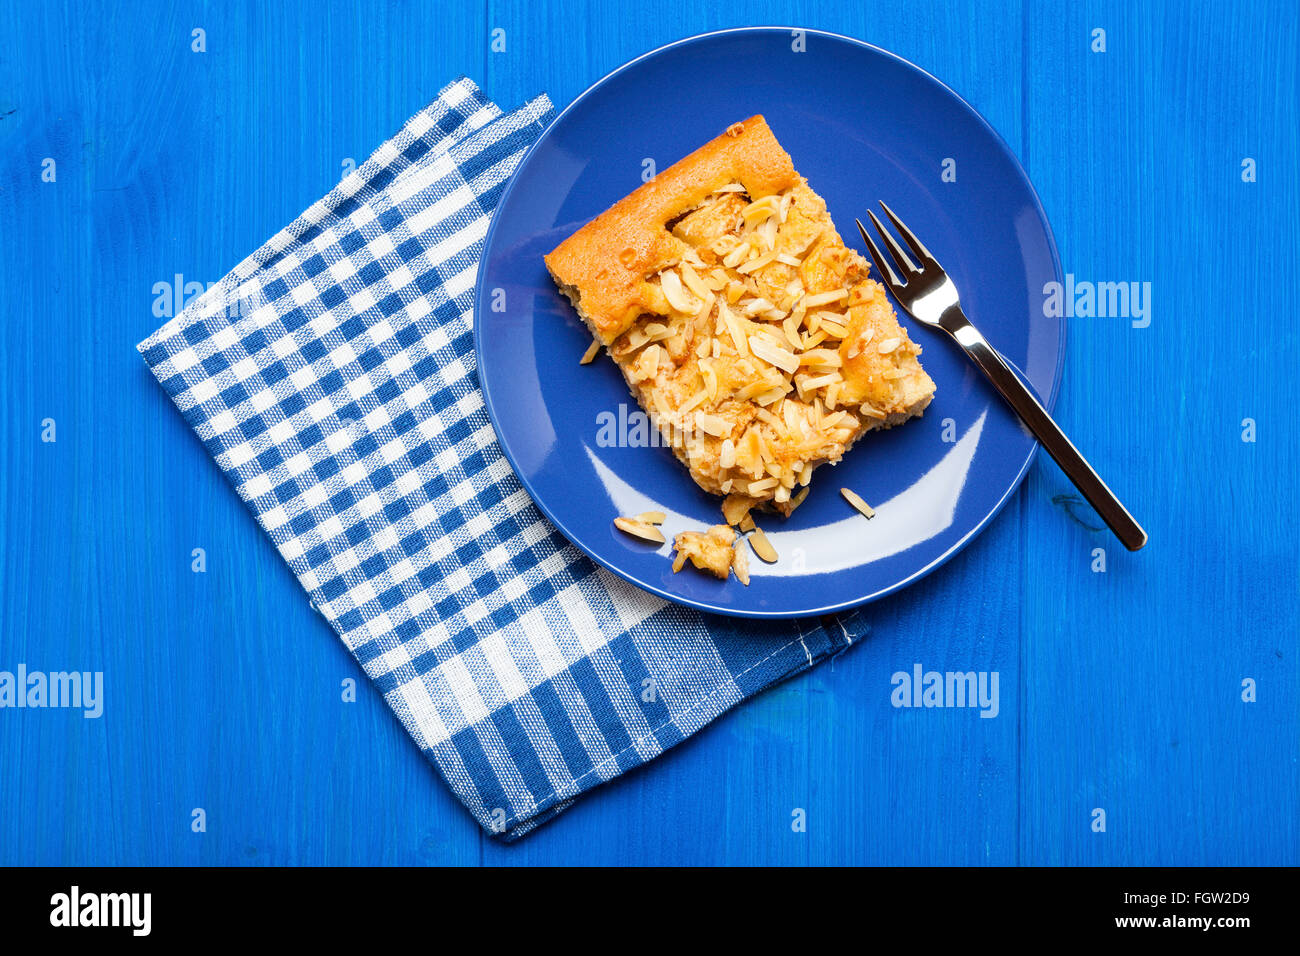 Piece of apple cake with almond slivers on blue plate and checkered napkin on wooden blue table, top view - Stock Image